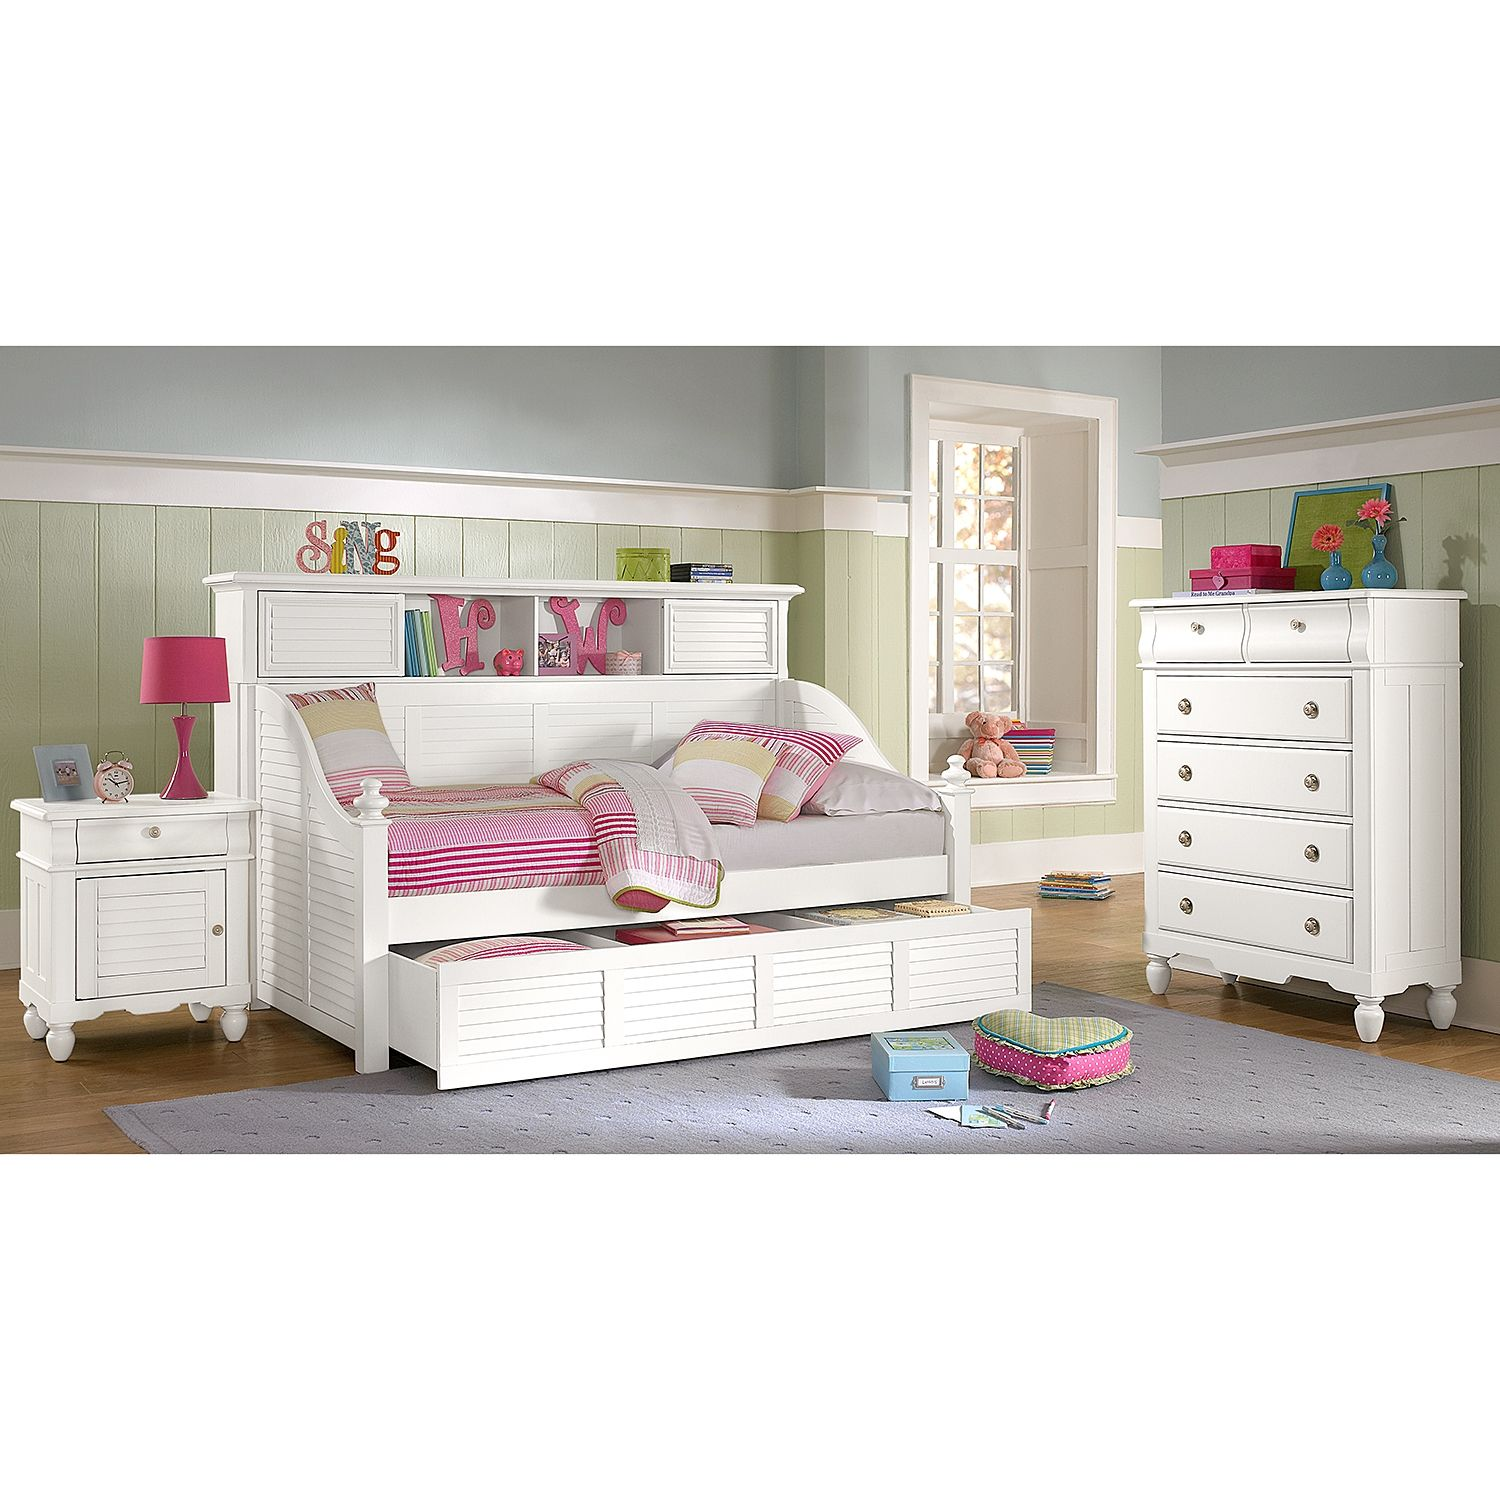 Seaside White Ii Bookcase Daybed With Trundle American Signature Furniture Daybed With Trundle White Kids Furniture Dorm Room Styles